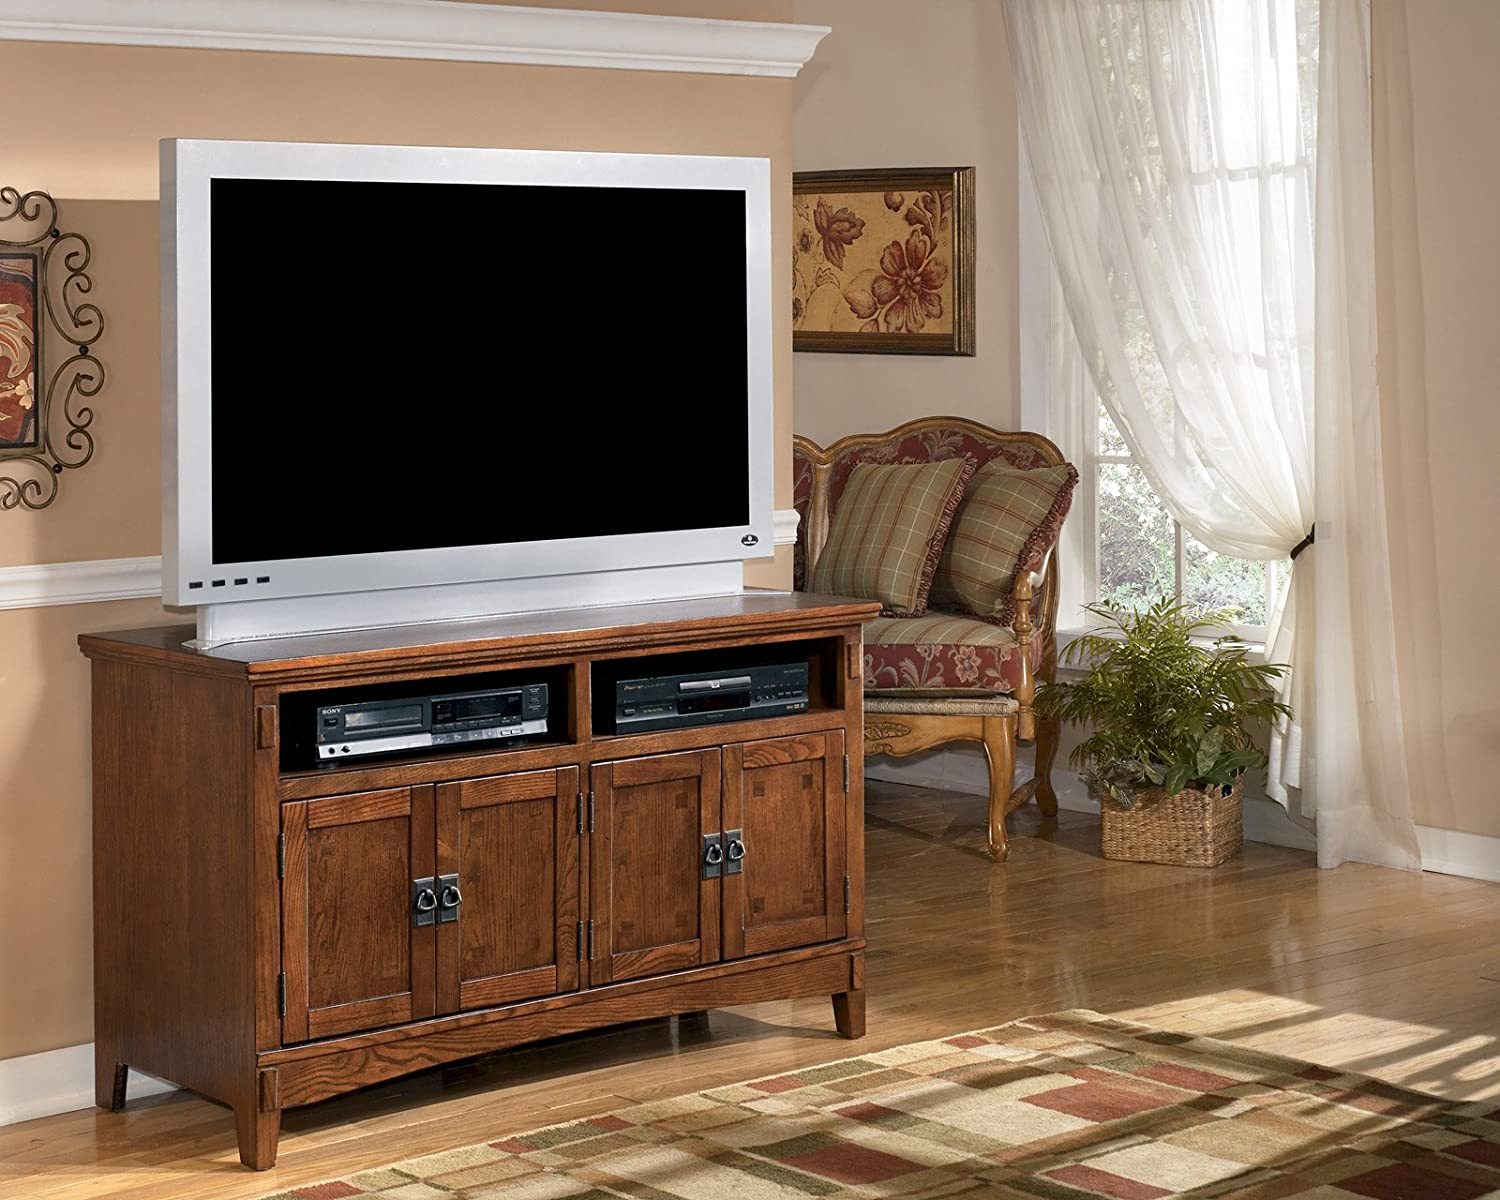 stand furniture product w frantin wfireplace fireplace center tv entertainment ashley